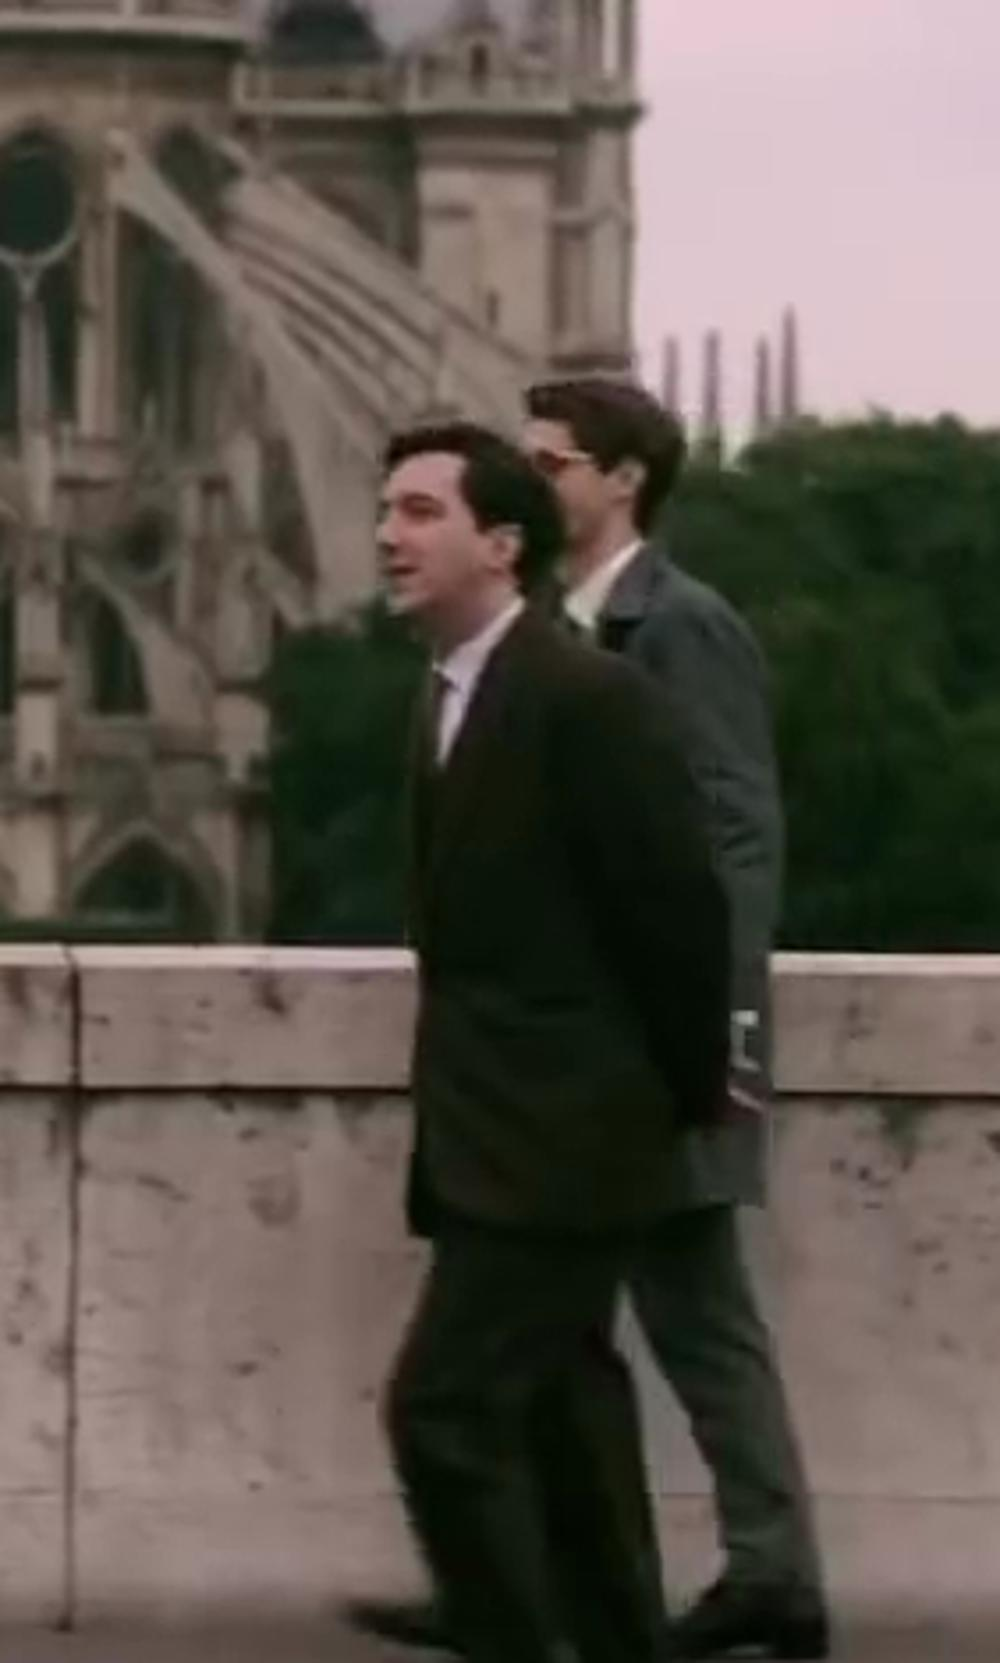 Guillaume Gallienne with Eton of Sweden Slim-Fit Solid Twill Dress Shirt in Yves Saint Laurent